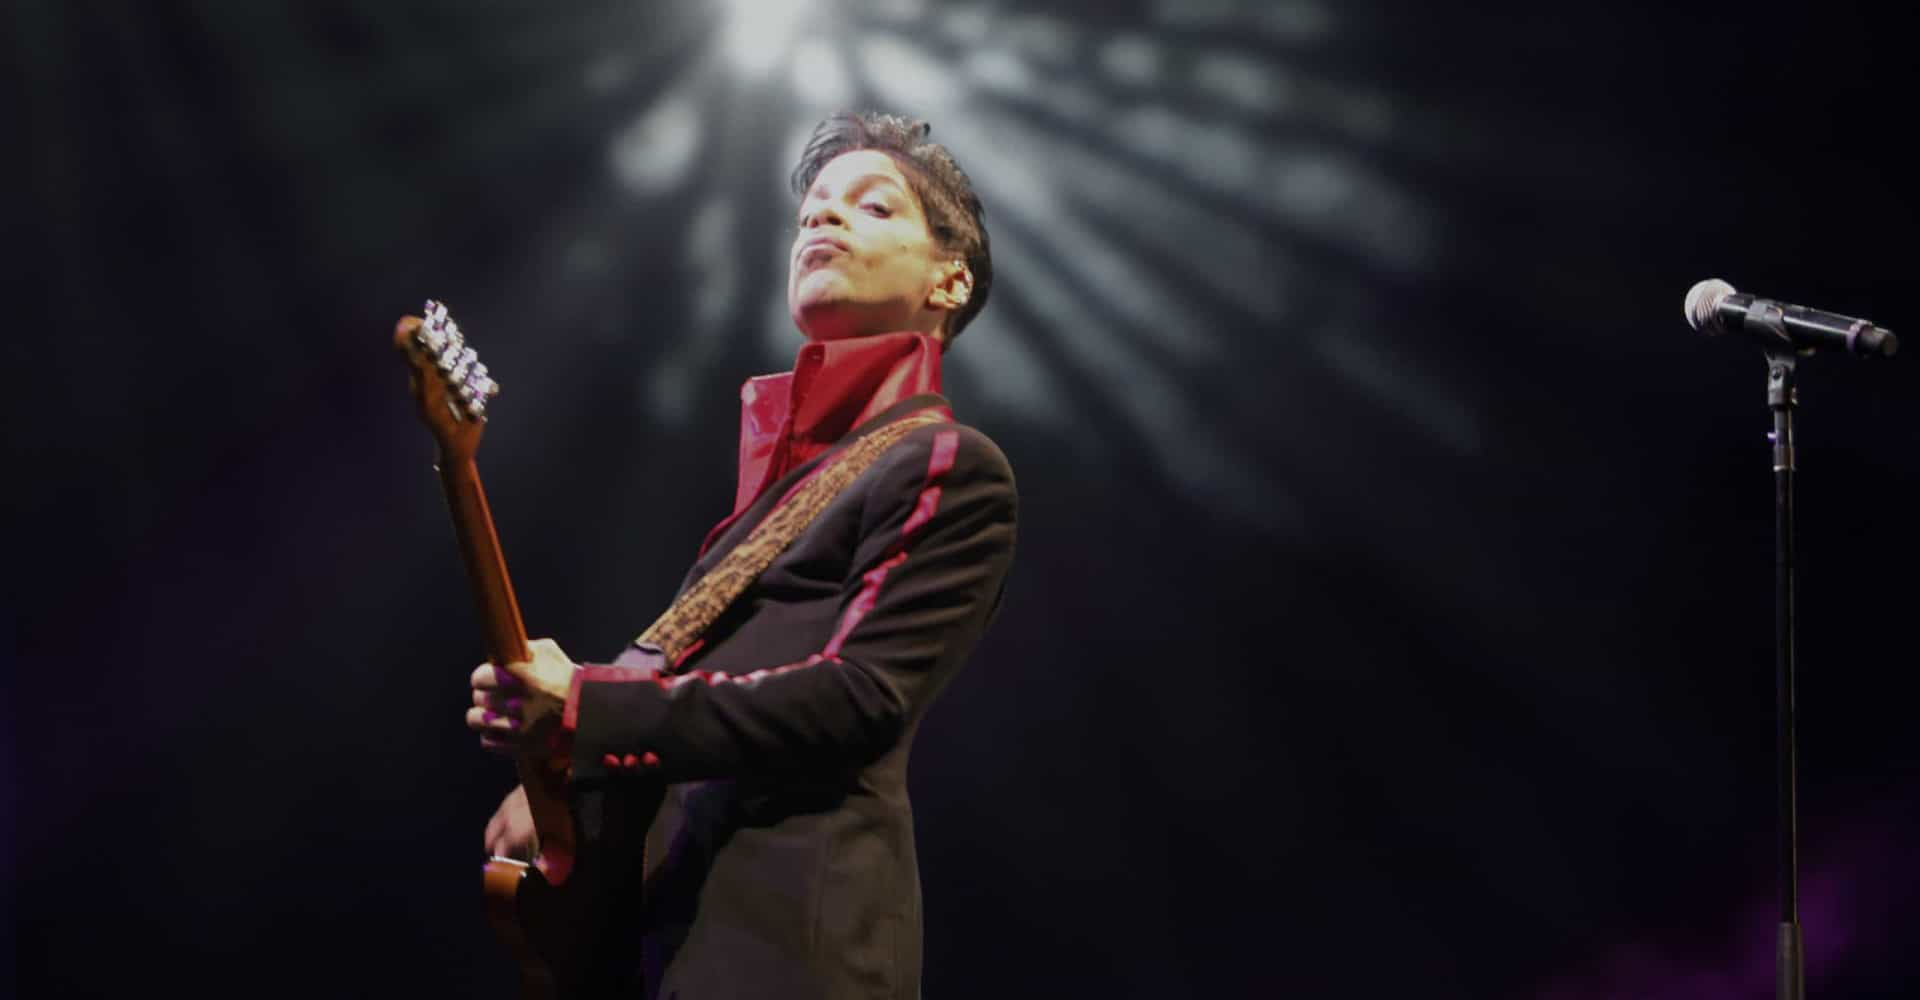 Hit songs you didn't know were written by Prince